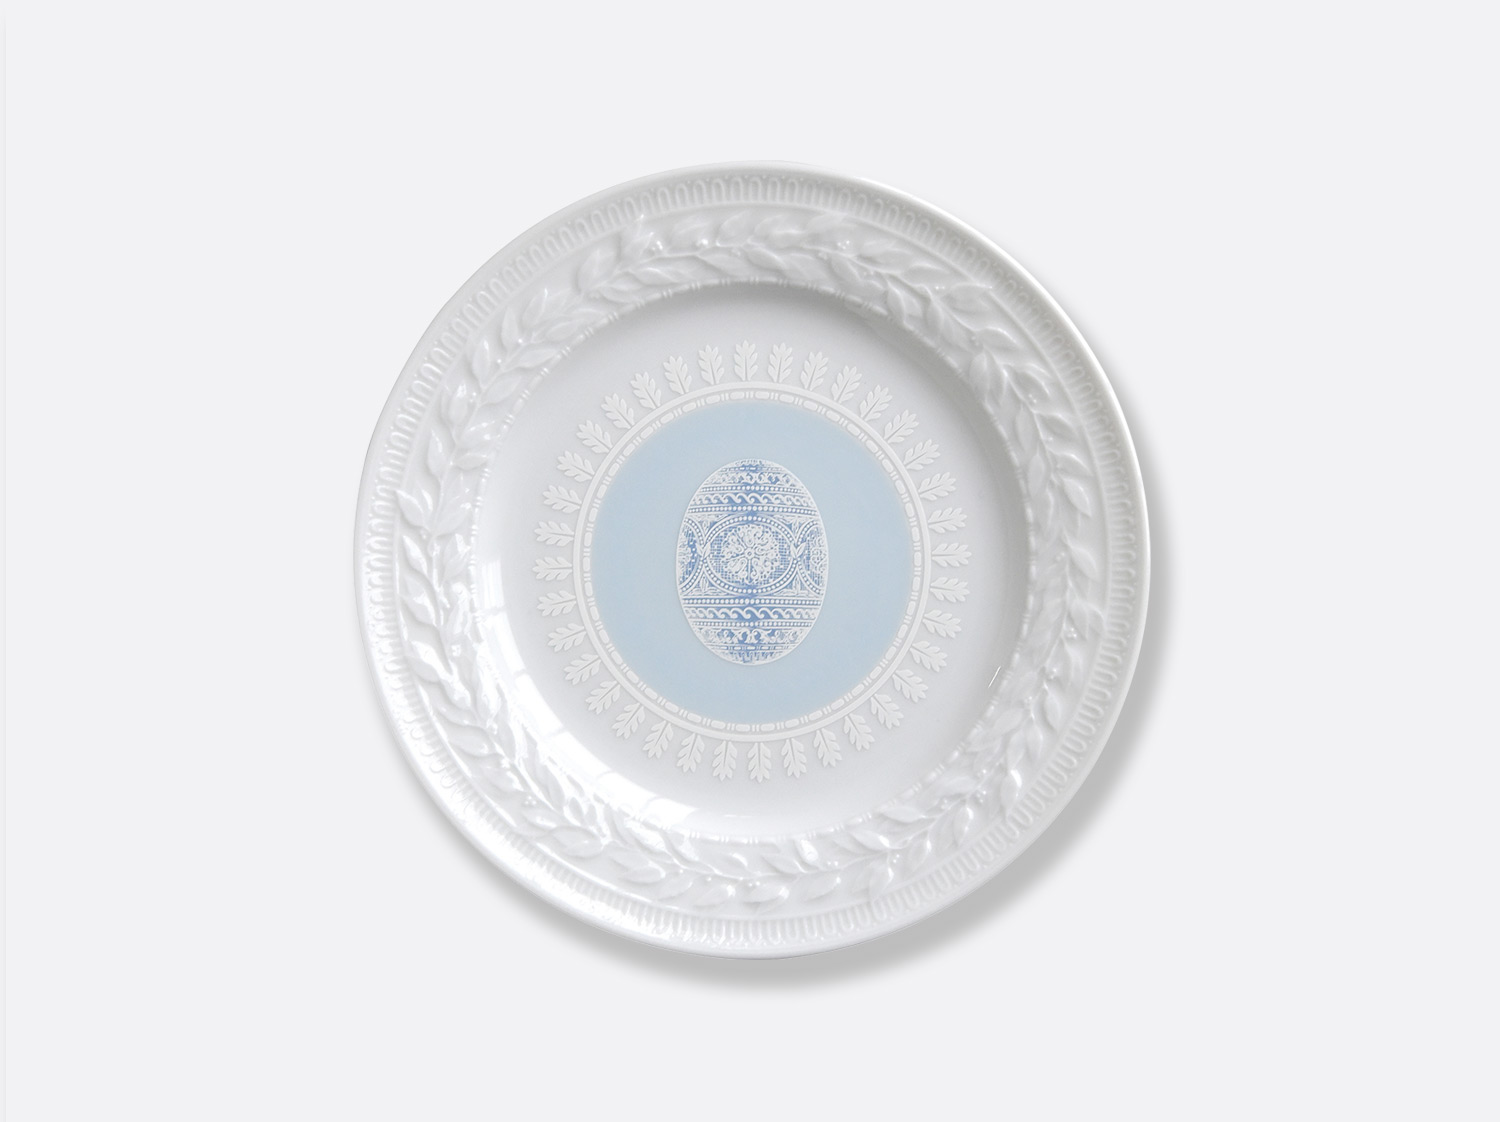 China Blue salad plate 21 cm of the collection Louvre pâques bleu | Bernardaud